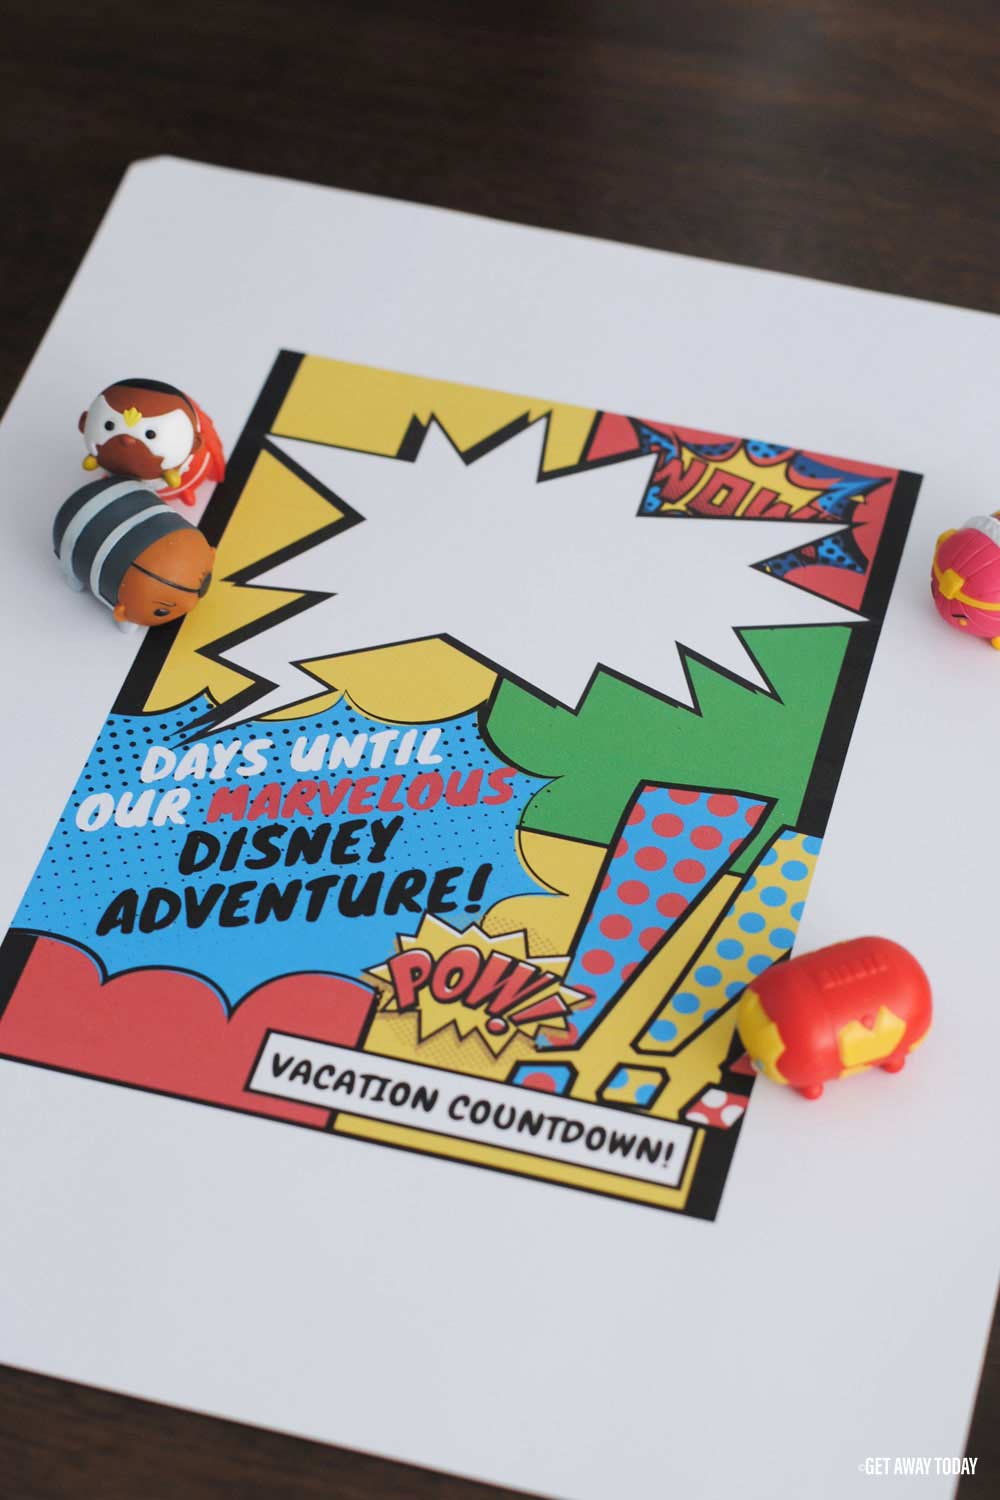 Marvel Printable California Adventure Vacation Countdown